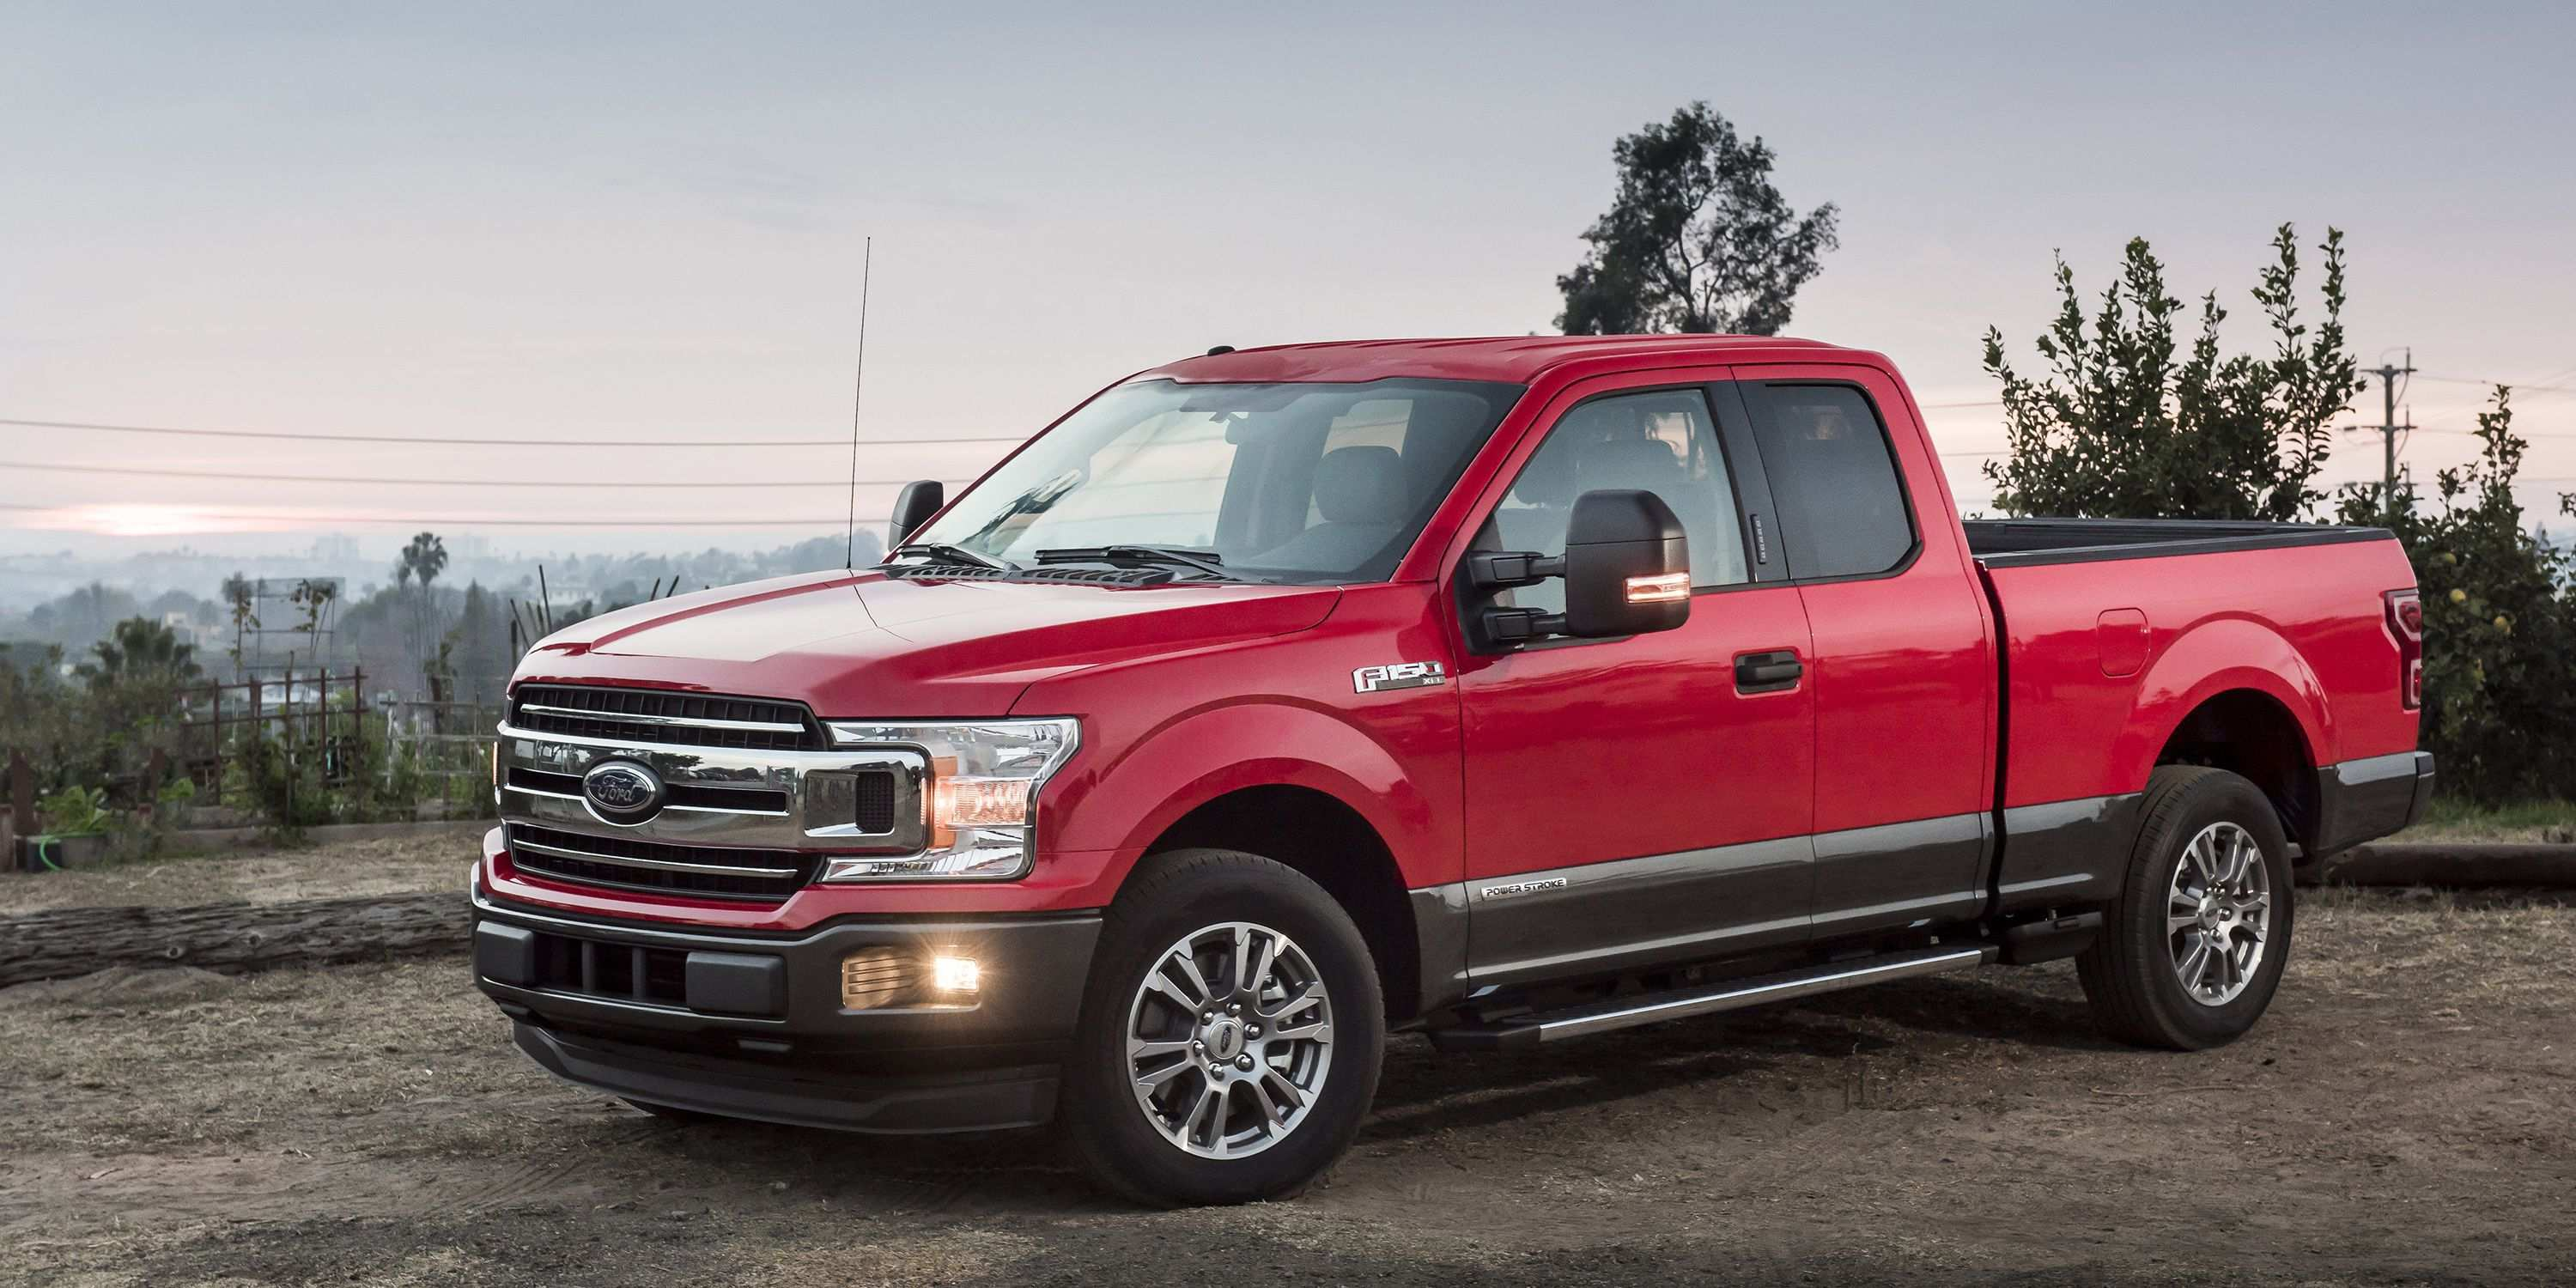 74 All New 2020 Ford F150 Raptor Mpg Research New